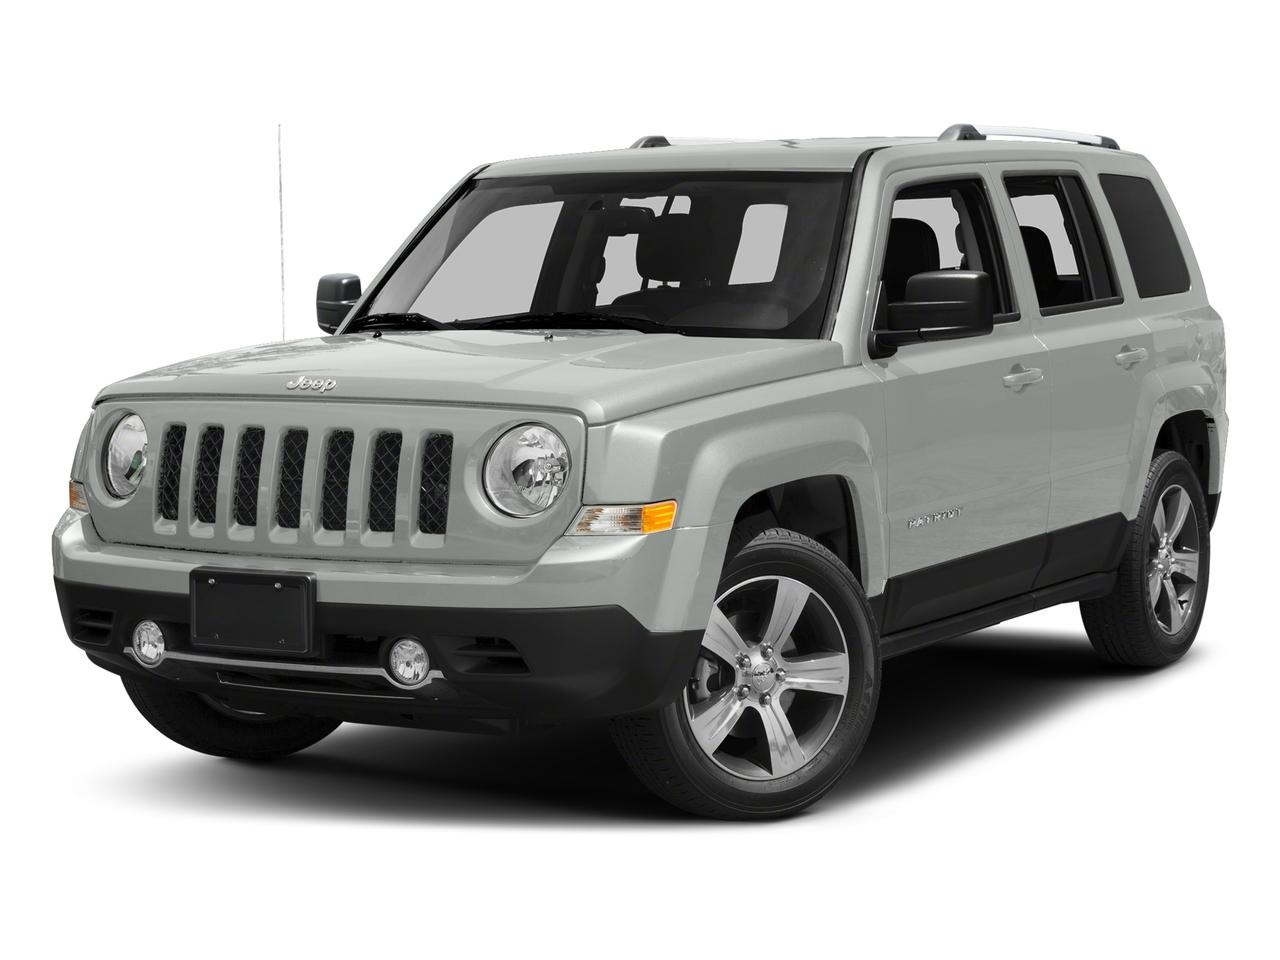 2017 Jeep Patriot Vehicle Photo in Prince Frederick, MD 20678